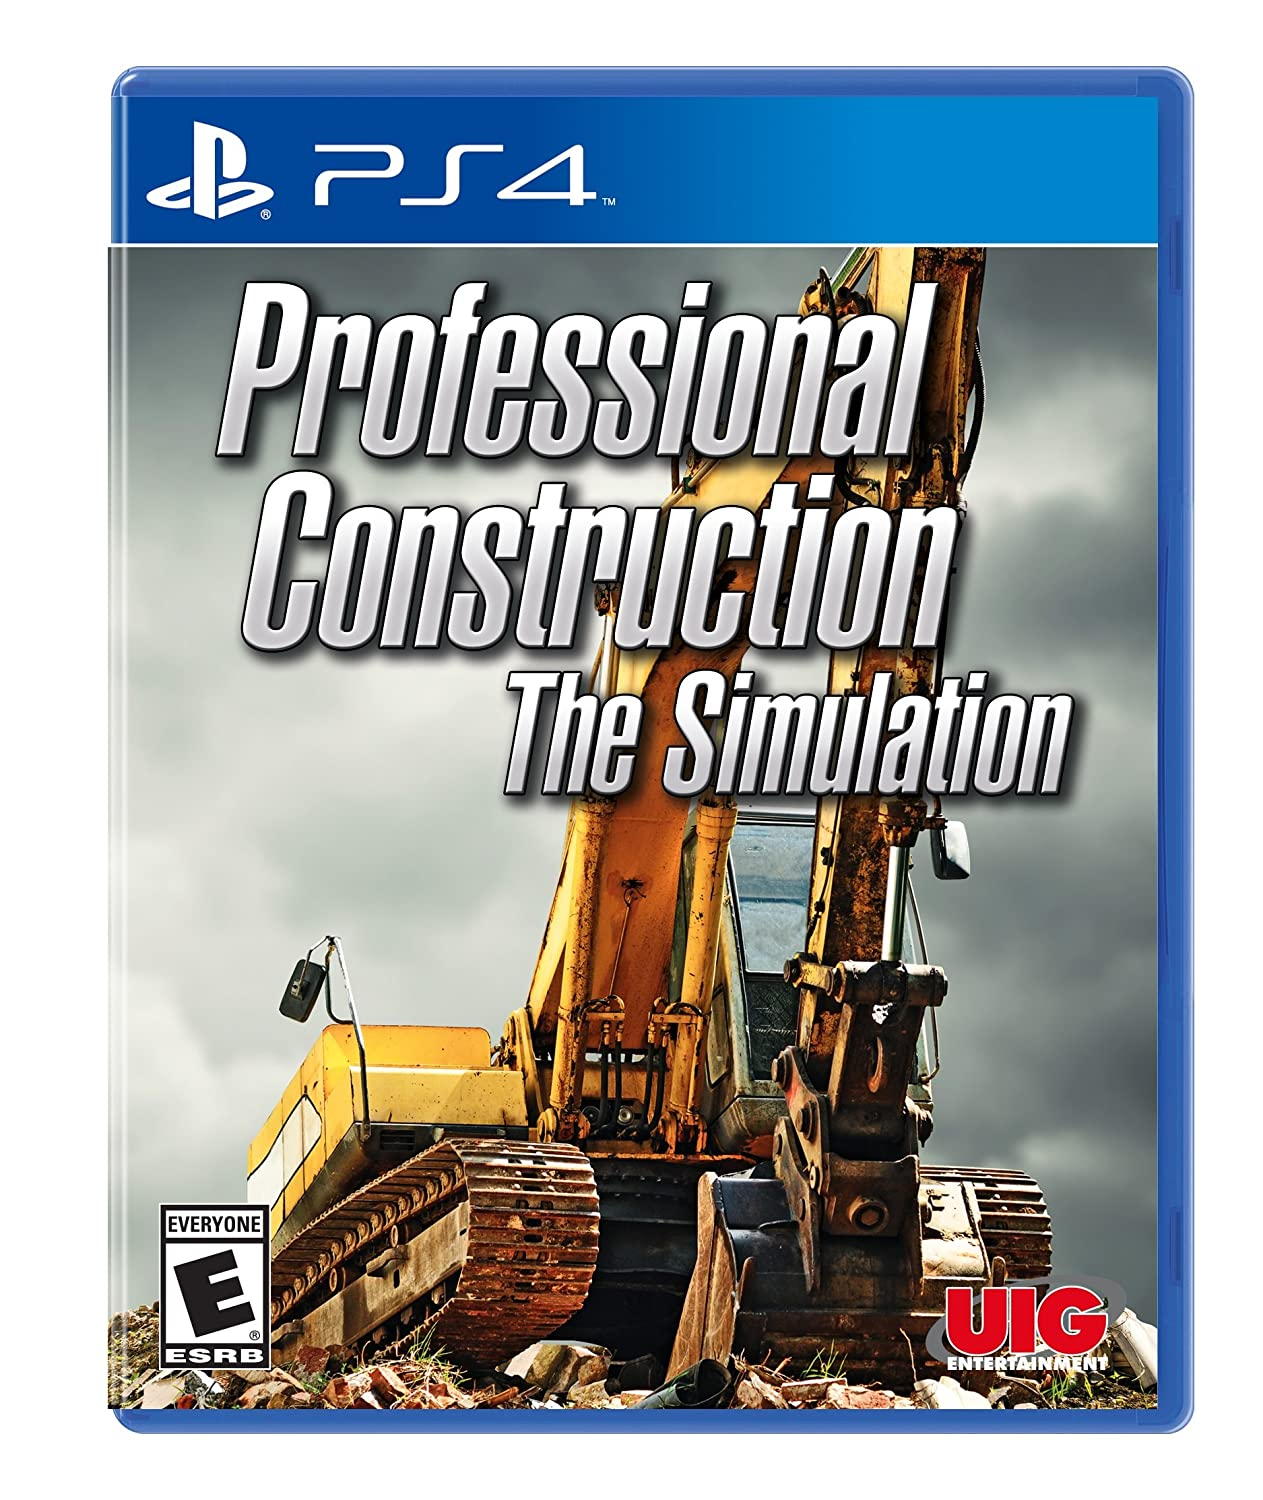 Uig Entertainment Professional Construction Simulator